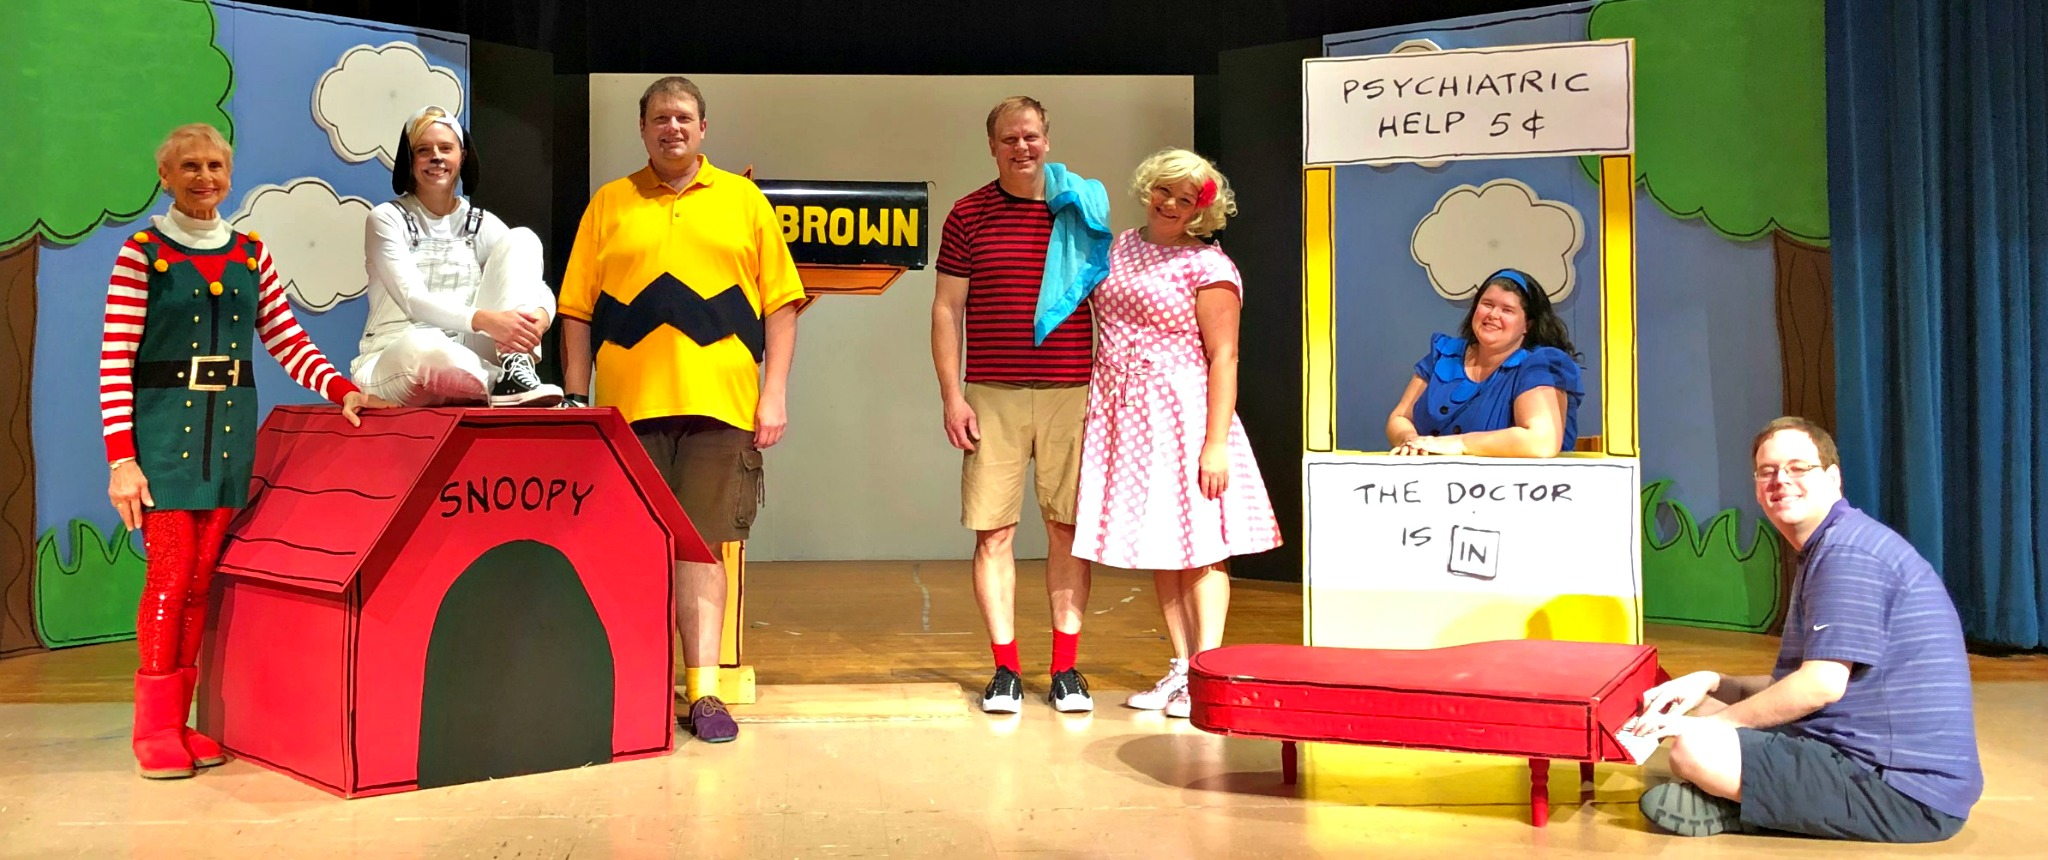 You're A Good Man, Charlie Brown November 30 - December 9, 2018 Clintonville, WI